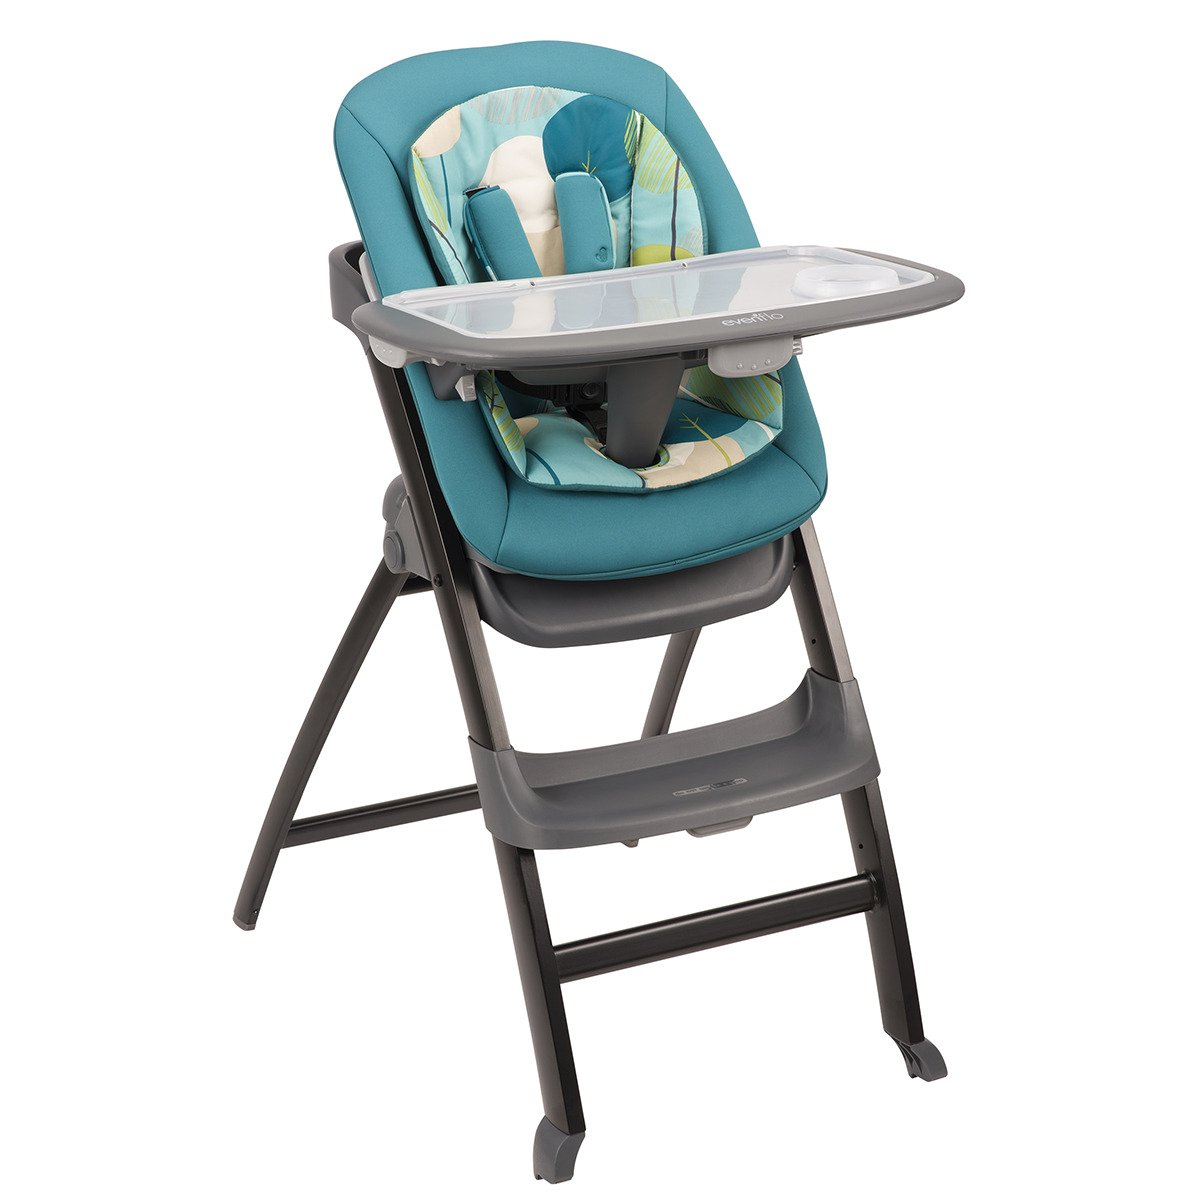 Evenflo Quatore 4 in 1 High Chair, Deep Lake, Teal 29411814